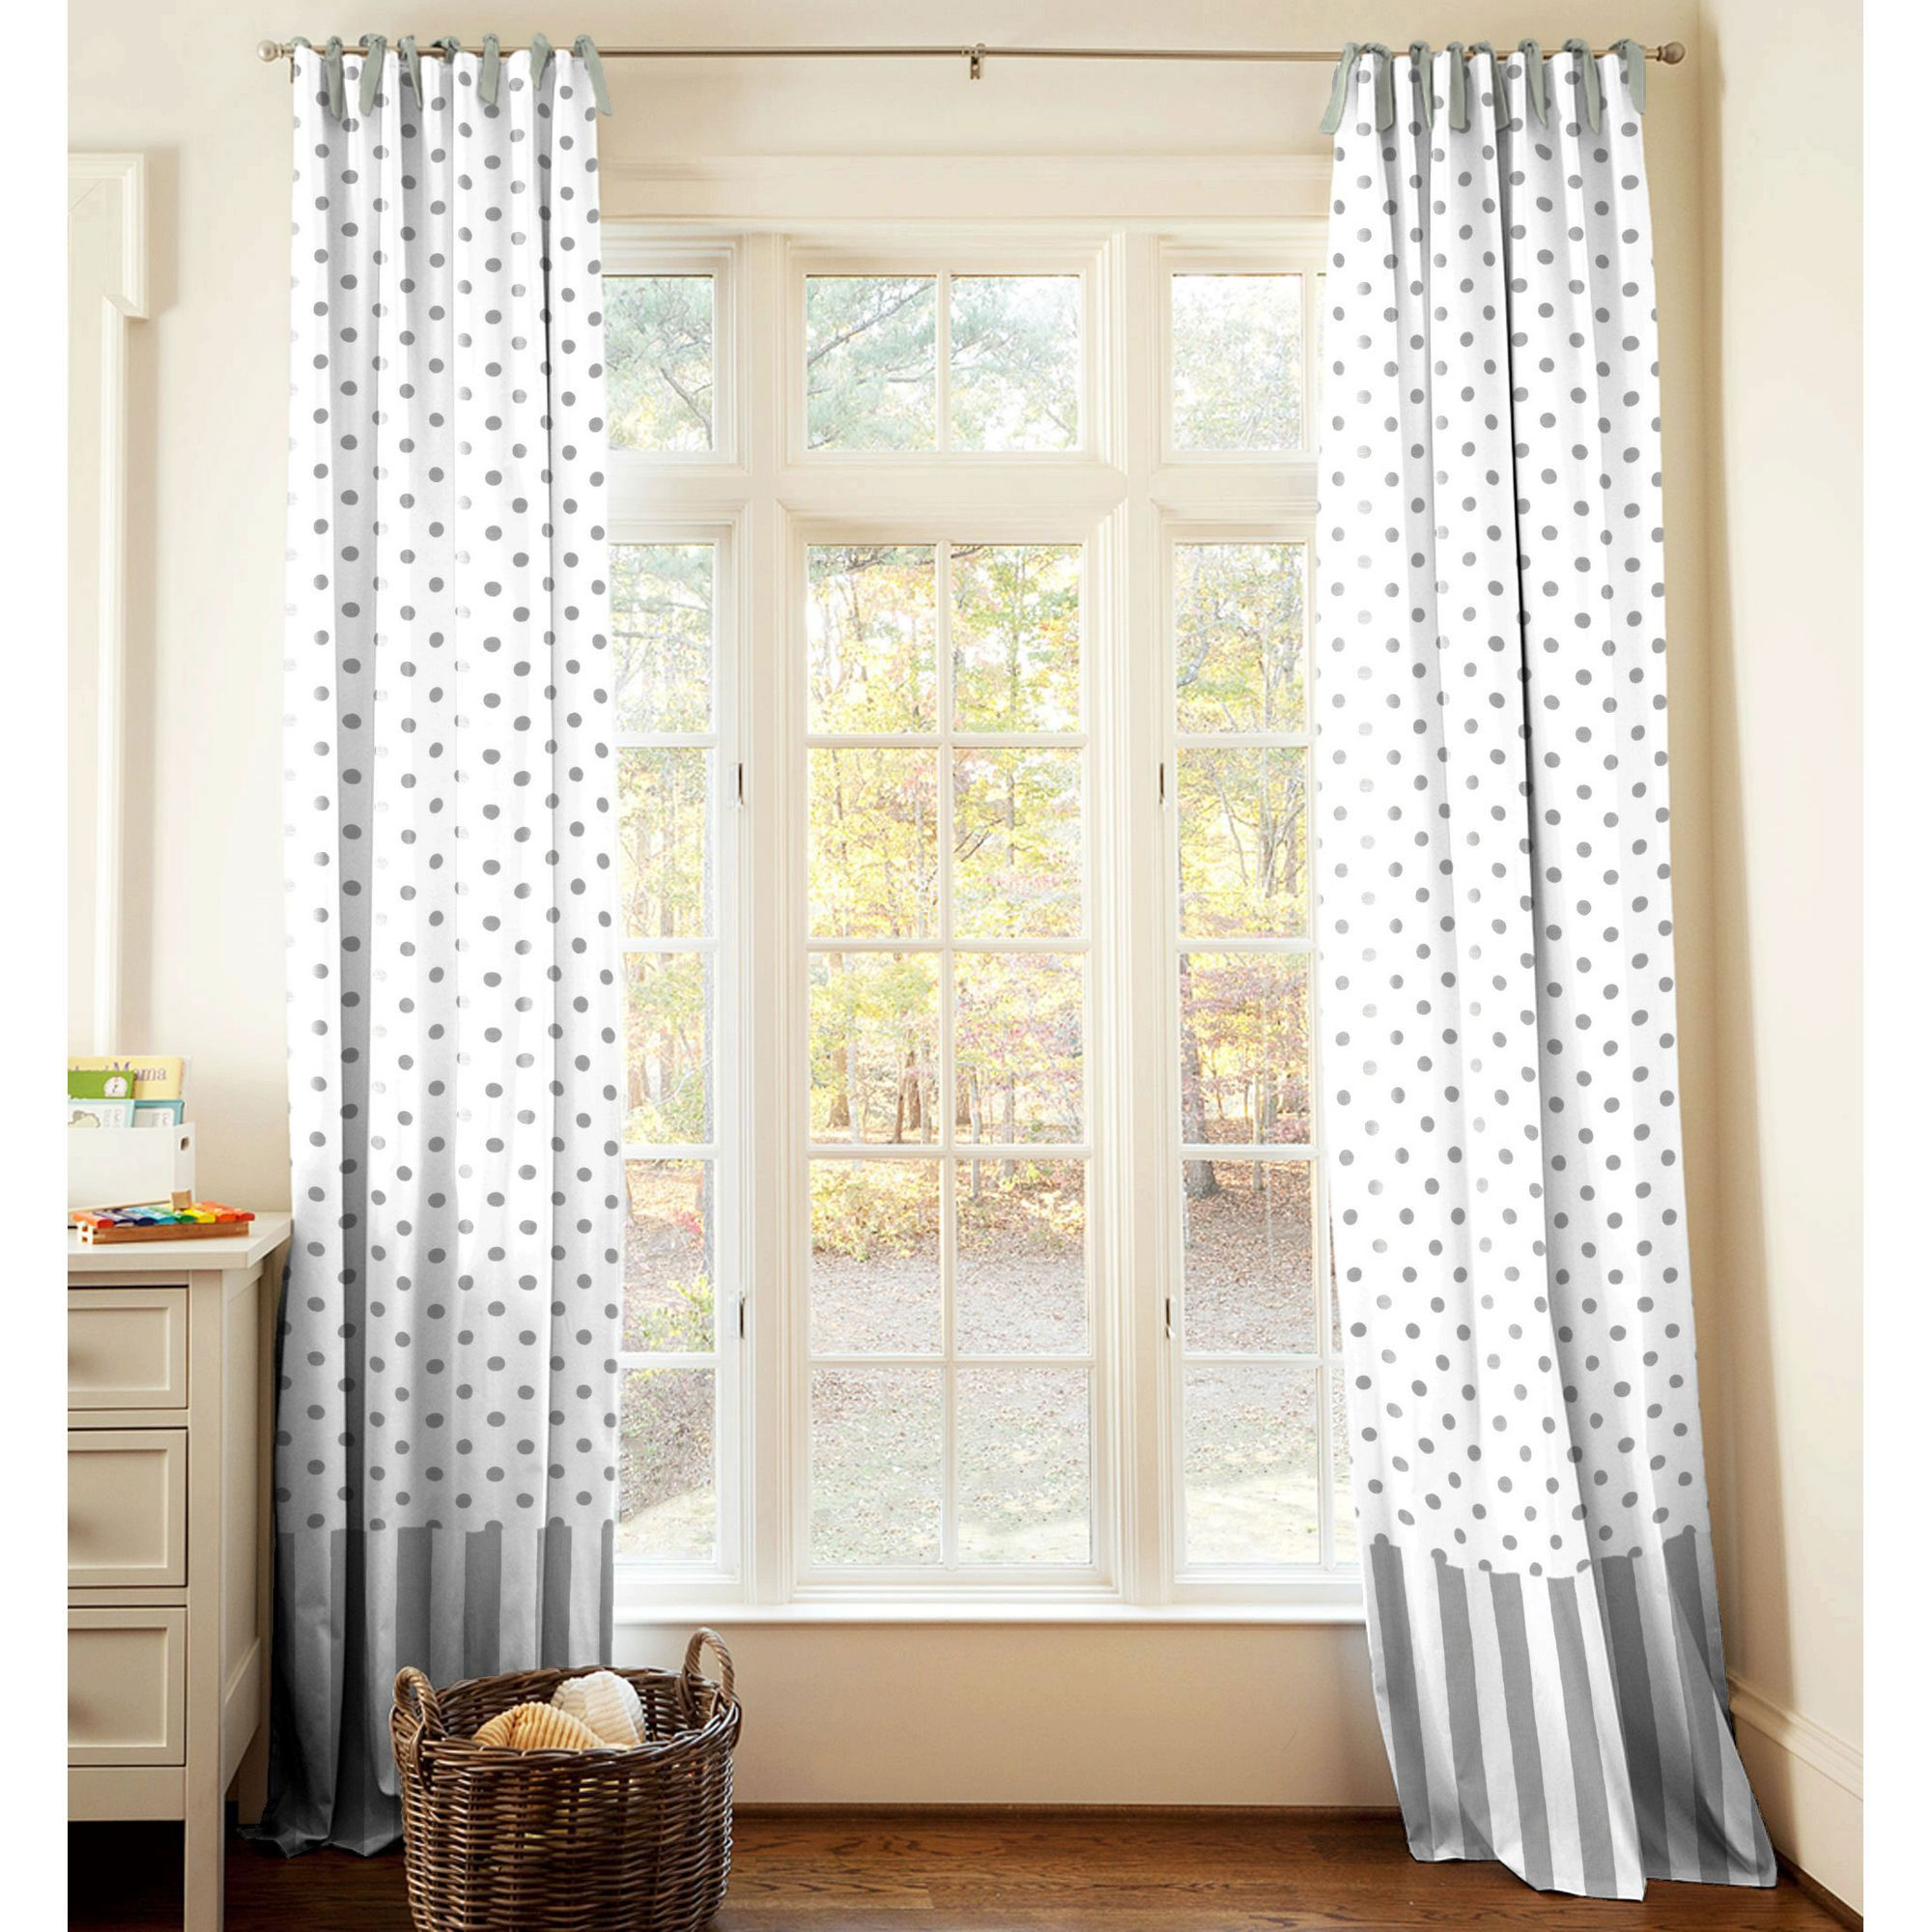 patio ideas and for full coverings curtains concept window newest you wide drapes glass inches doors treatments home panels of white sliding picture grommet windowngs mobile can wideextra decorations drapery extra cover amazing drapeswide size best curtain door image blackout width fantastic street